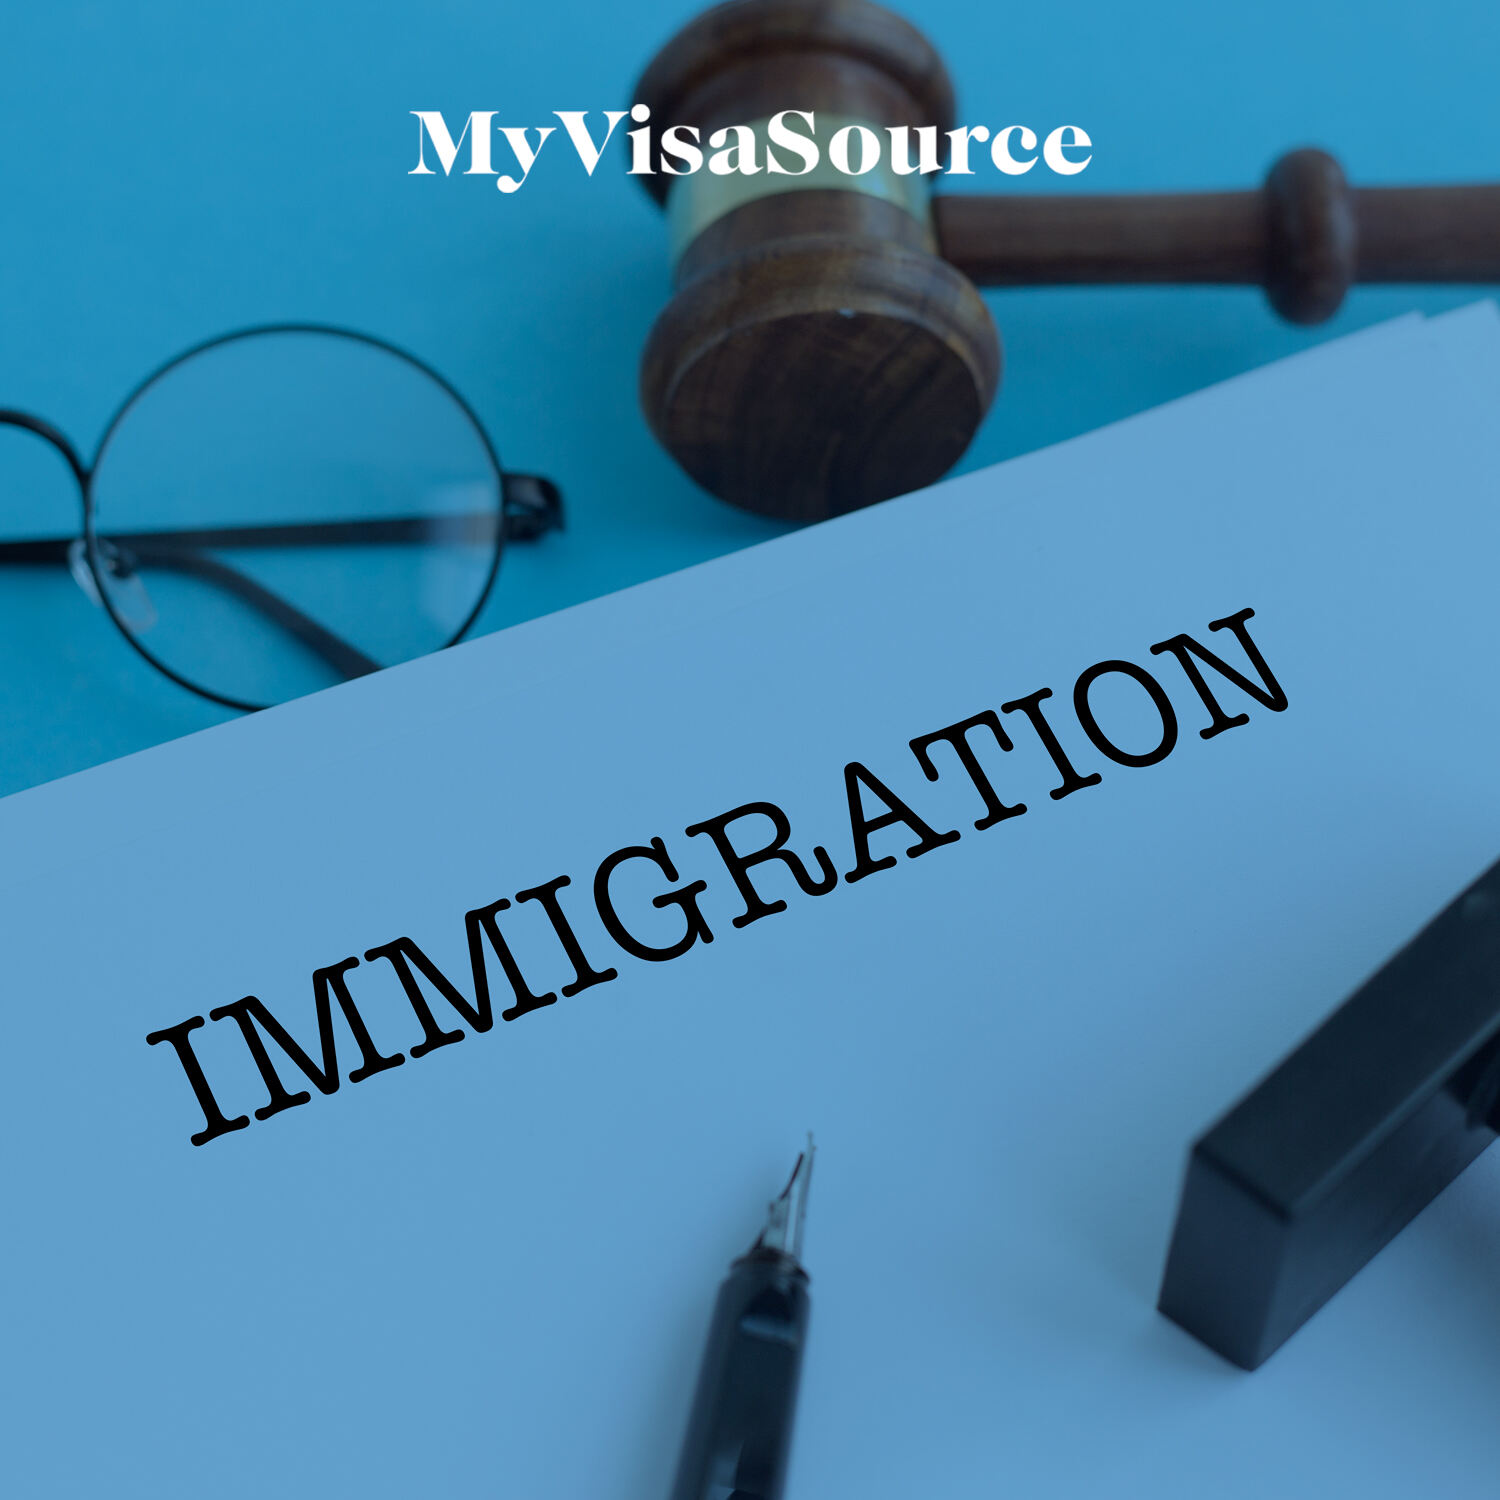 paper with immigration title on it pen gavel glasses near my visa source